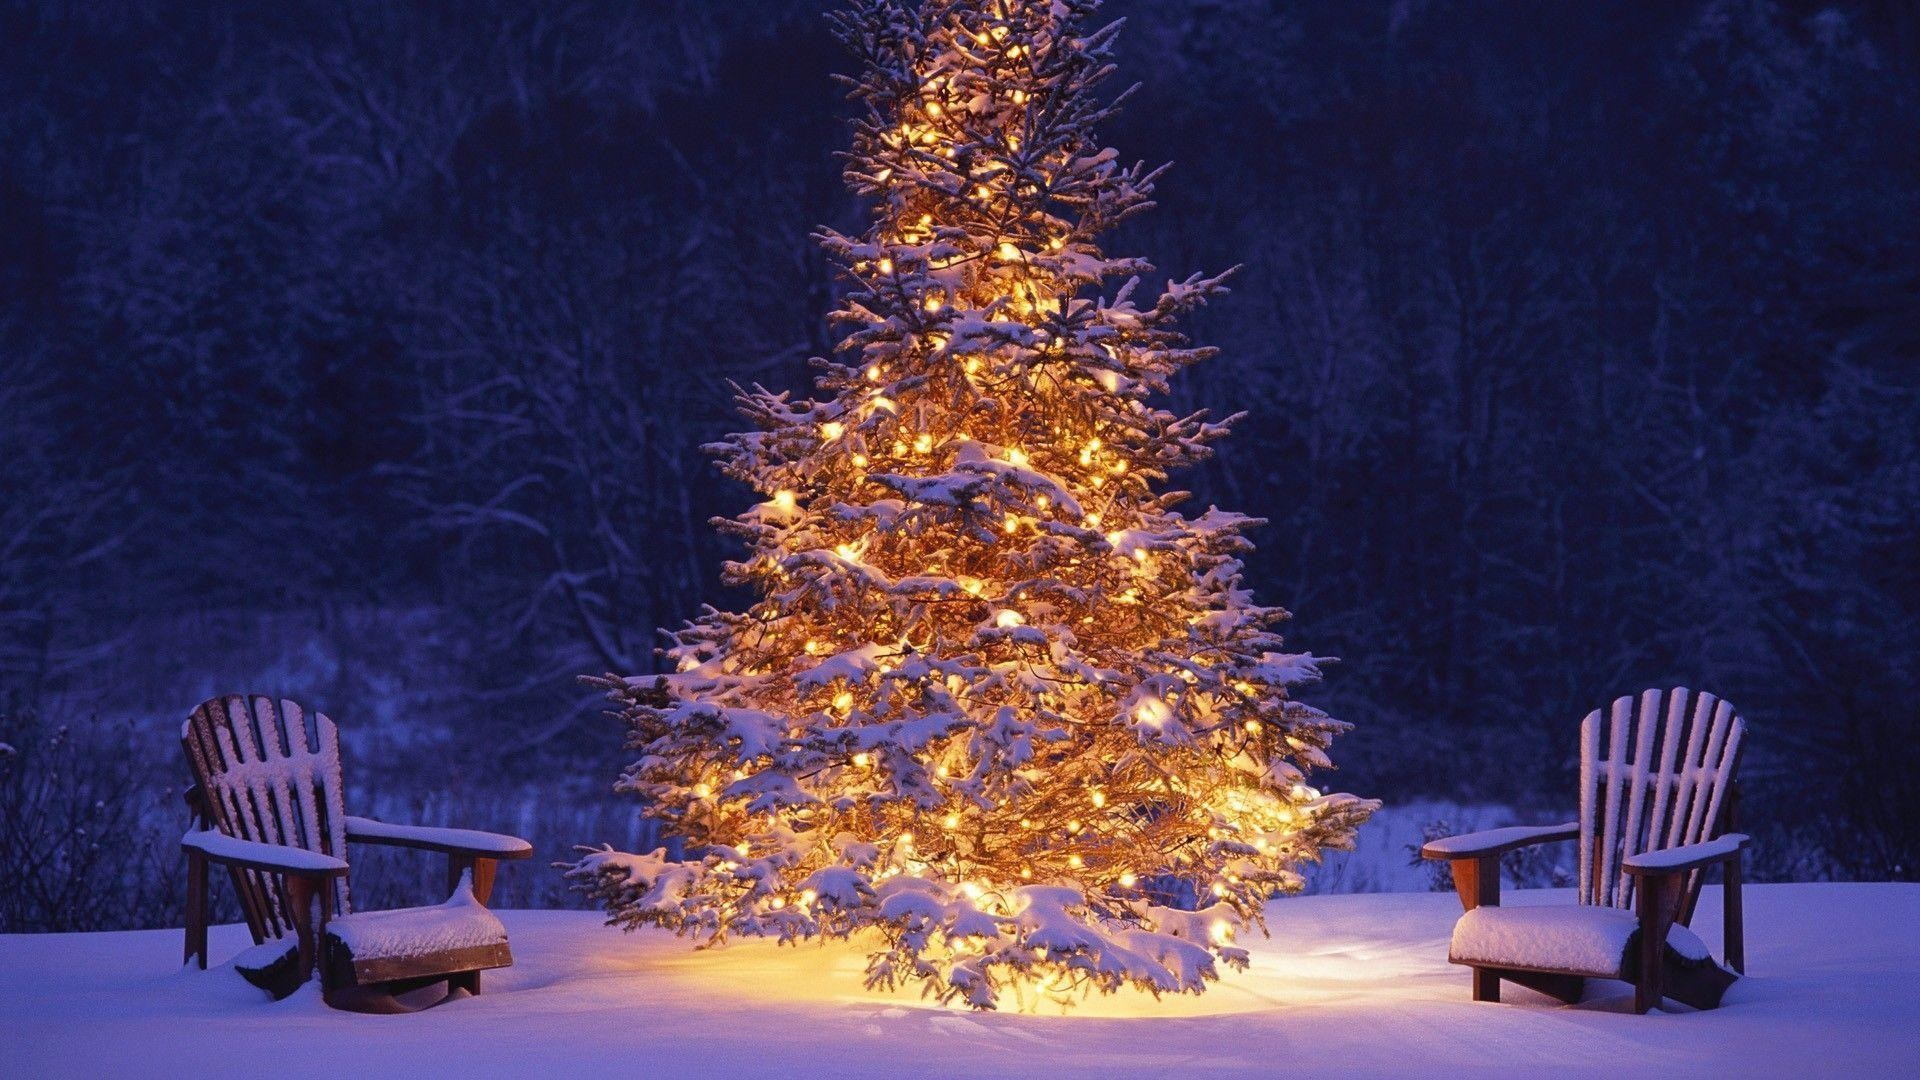 Wallpapers For > Christmas Wallpaper For Computer